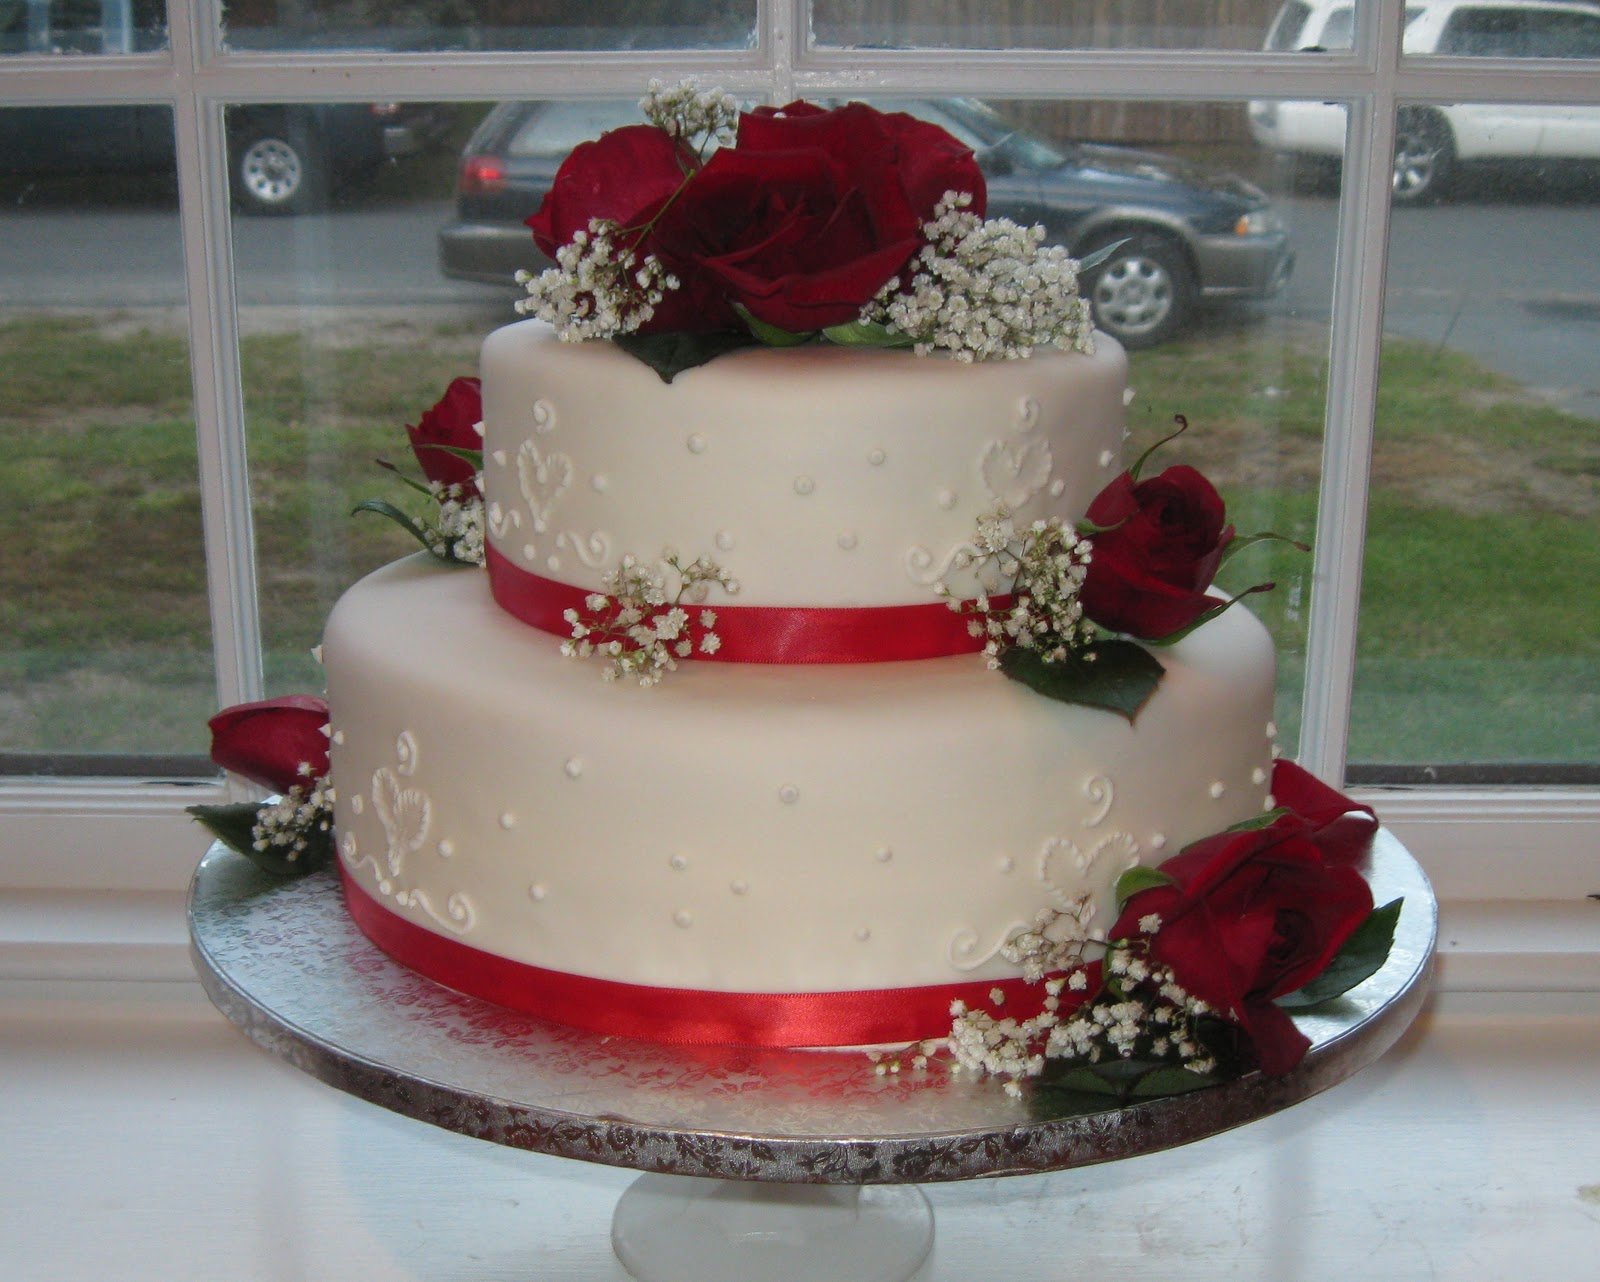 Cake Decorating Ideas For Ruby Wedding : Baking Outside the Box: Decorated Cakes